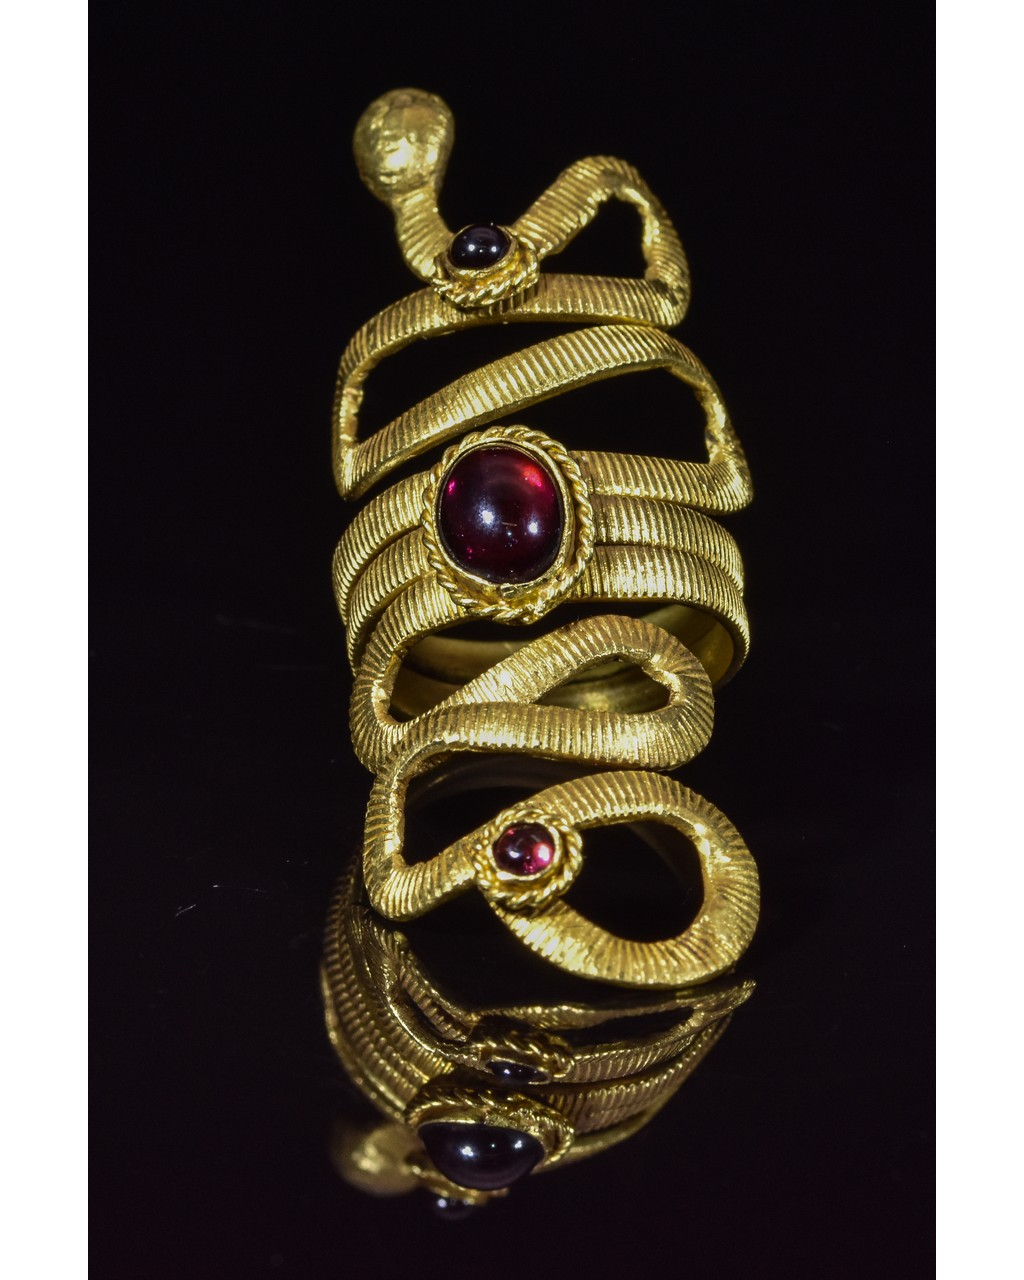 Lot 44 - ROMANO-EGYPTIAN GOLD SNAKE RING WITH STONES